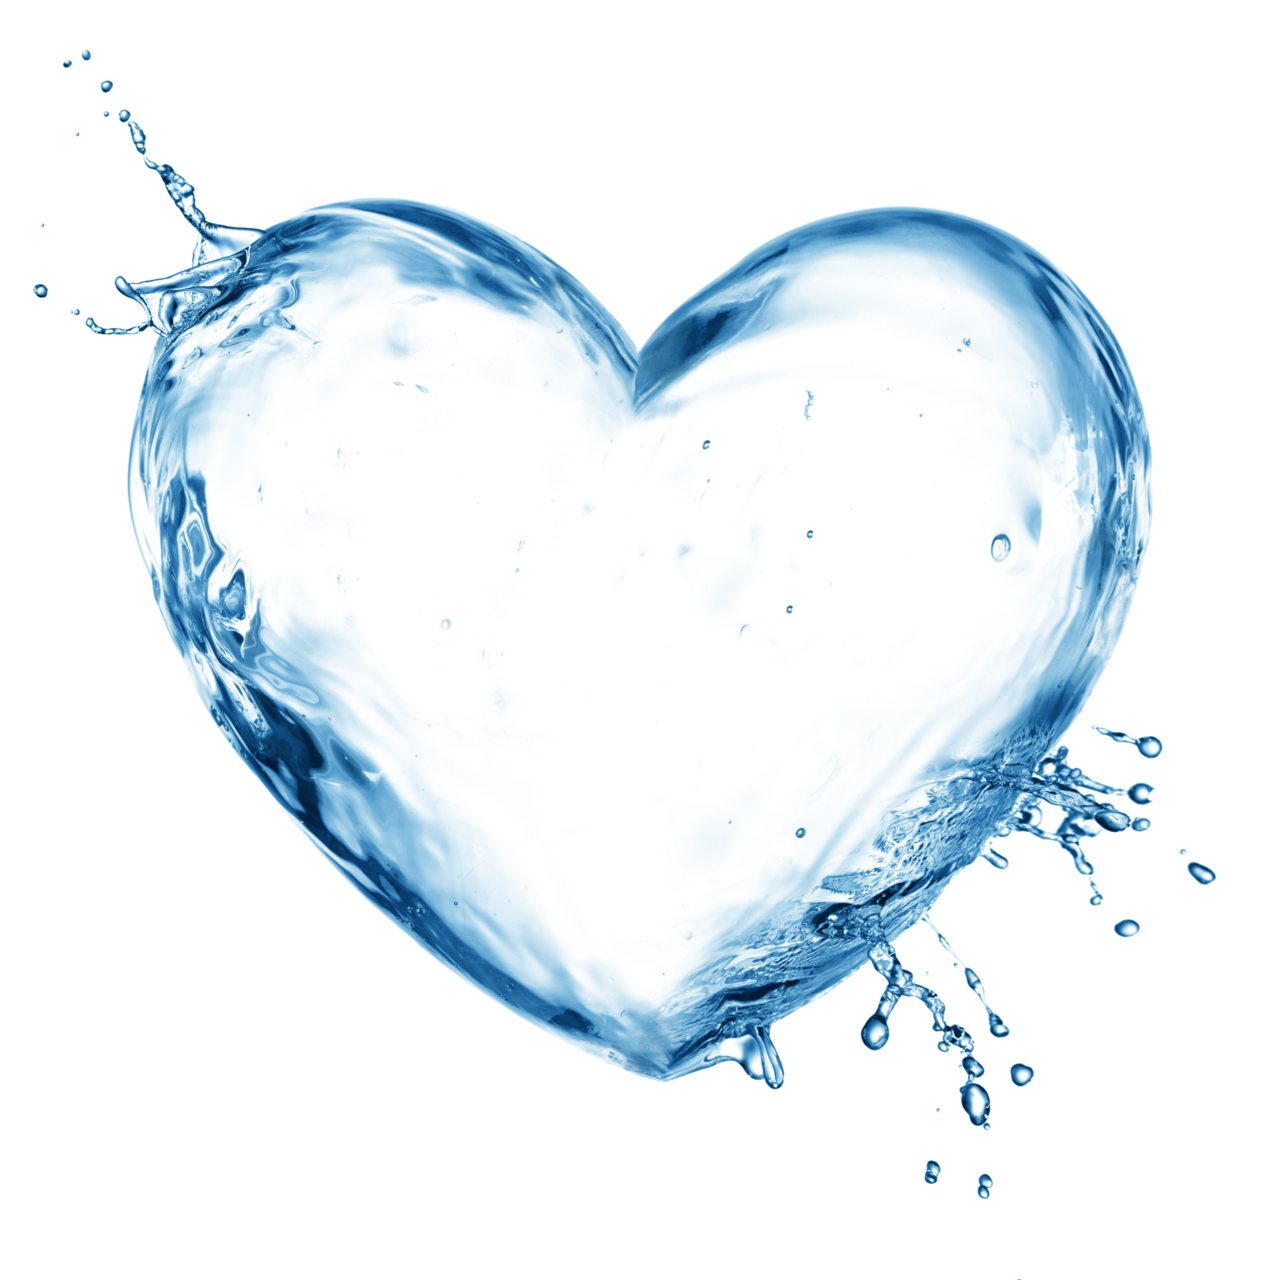 Agua png by eross. Heart clipart water